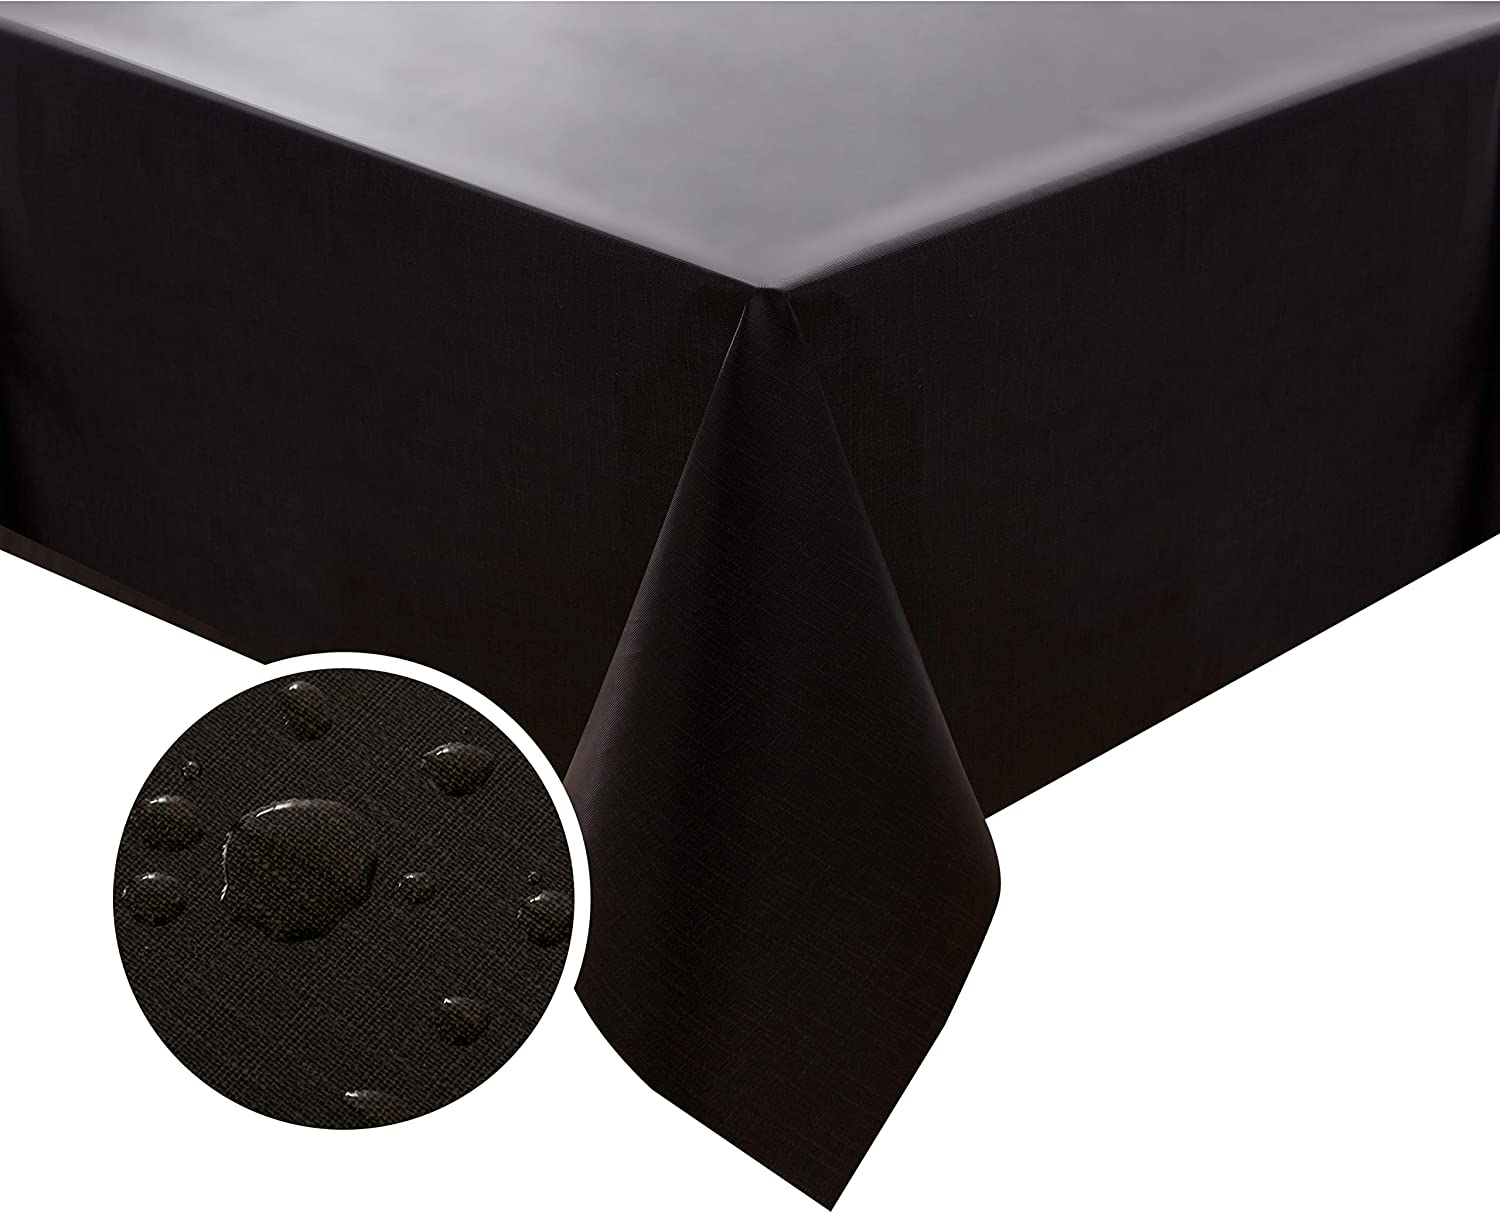 NLMUVW Rectangle Vinyl Tablecloth 100% Waterproof Oil Proof Spill Proof PVC Table Cloth Wipe Clean Table Cover for Kitchen Dining Picnic, 54 x 78 inch, Black